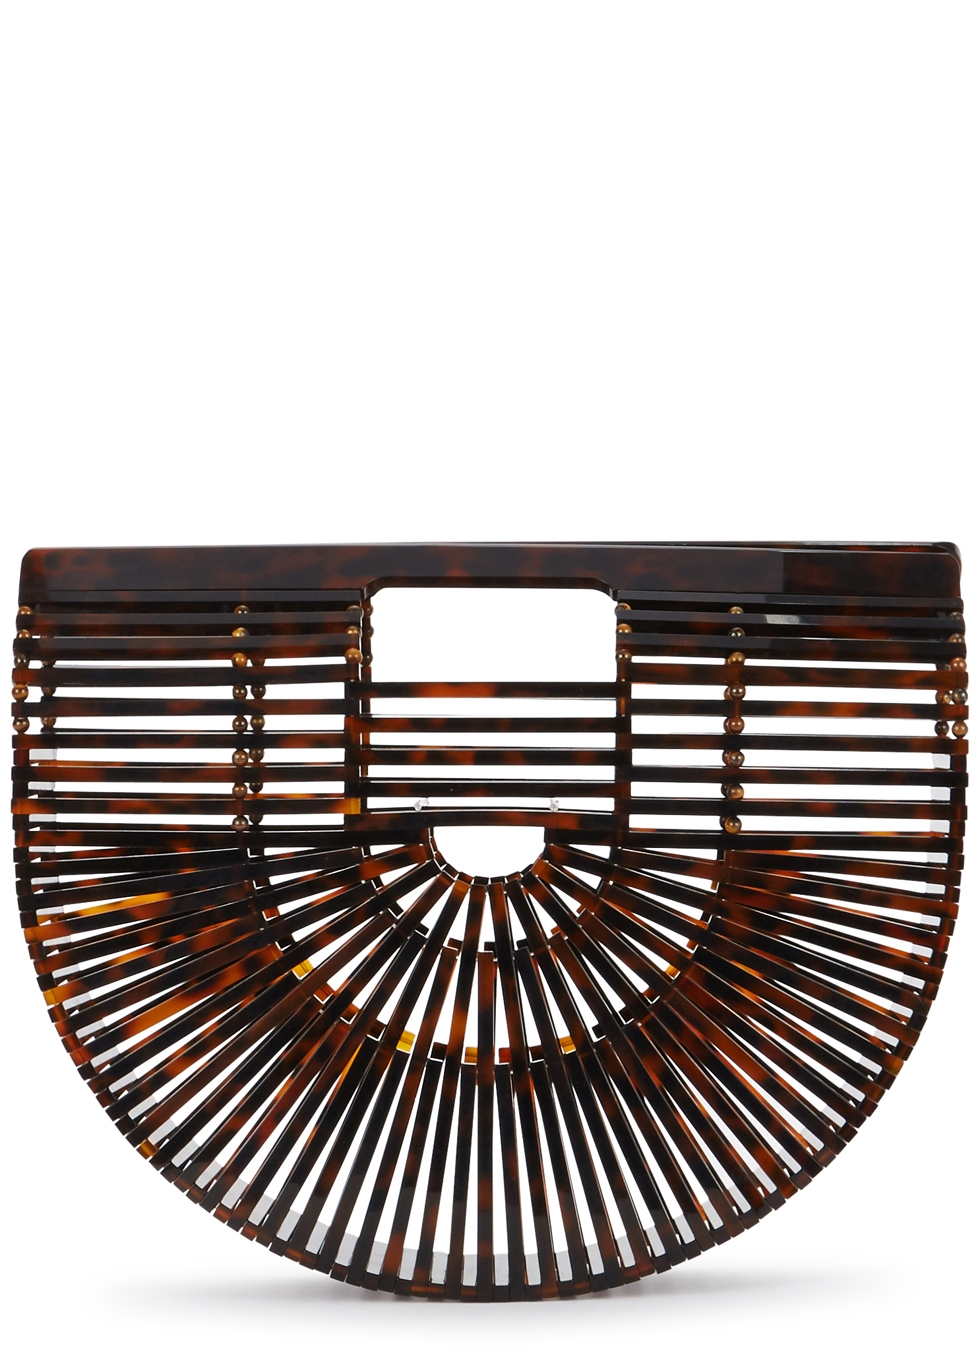 CULT GAIA ARK SMALL TORTOISESHELL CLUTCH